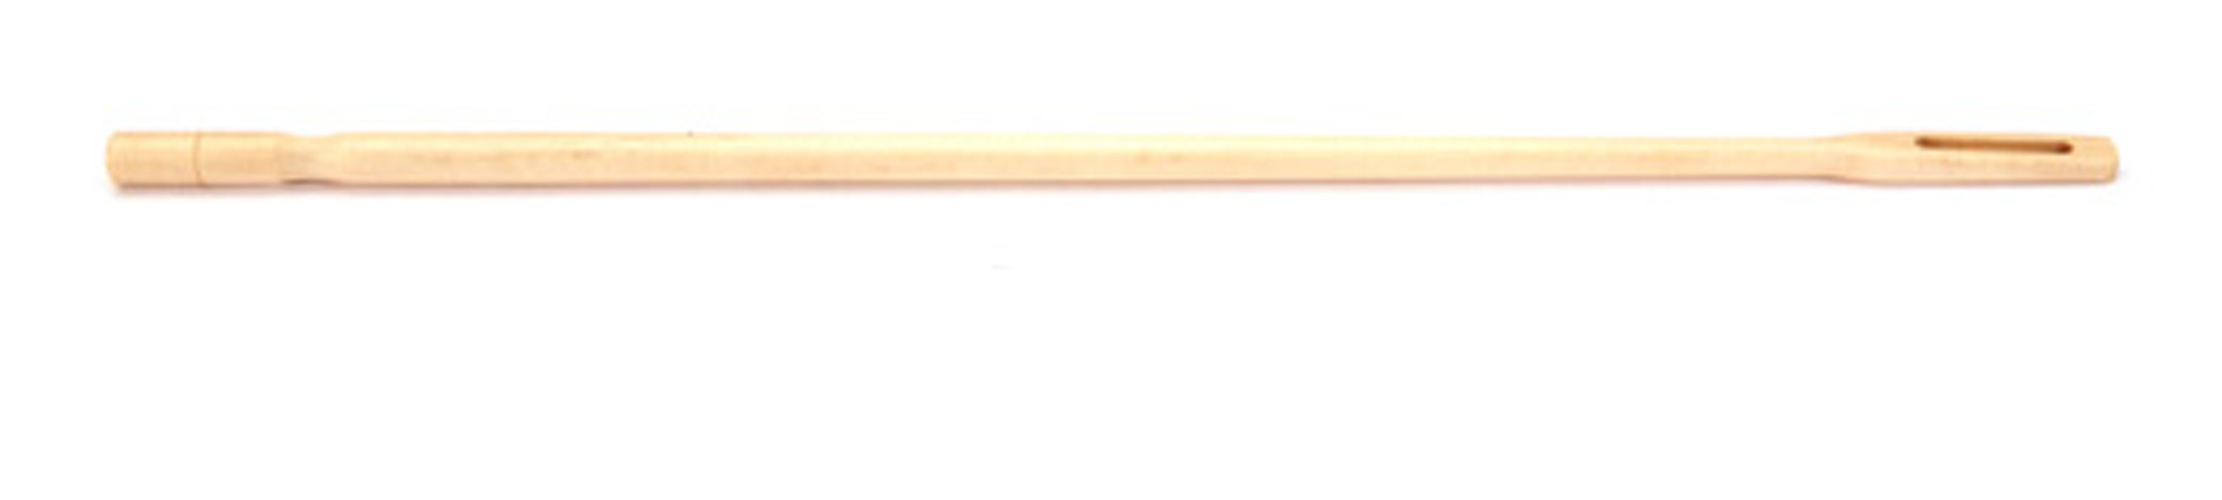 Windcraft Wooden Flute Rod - Standard